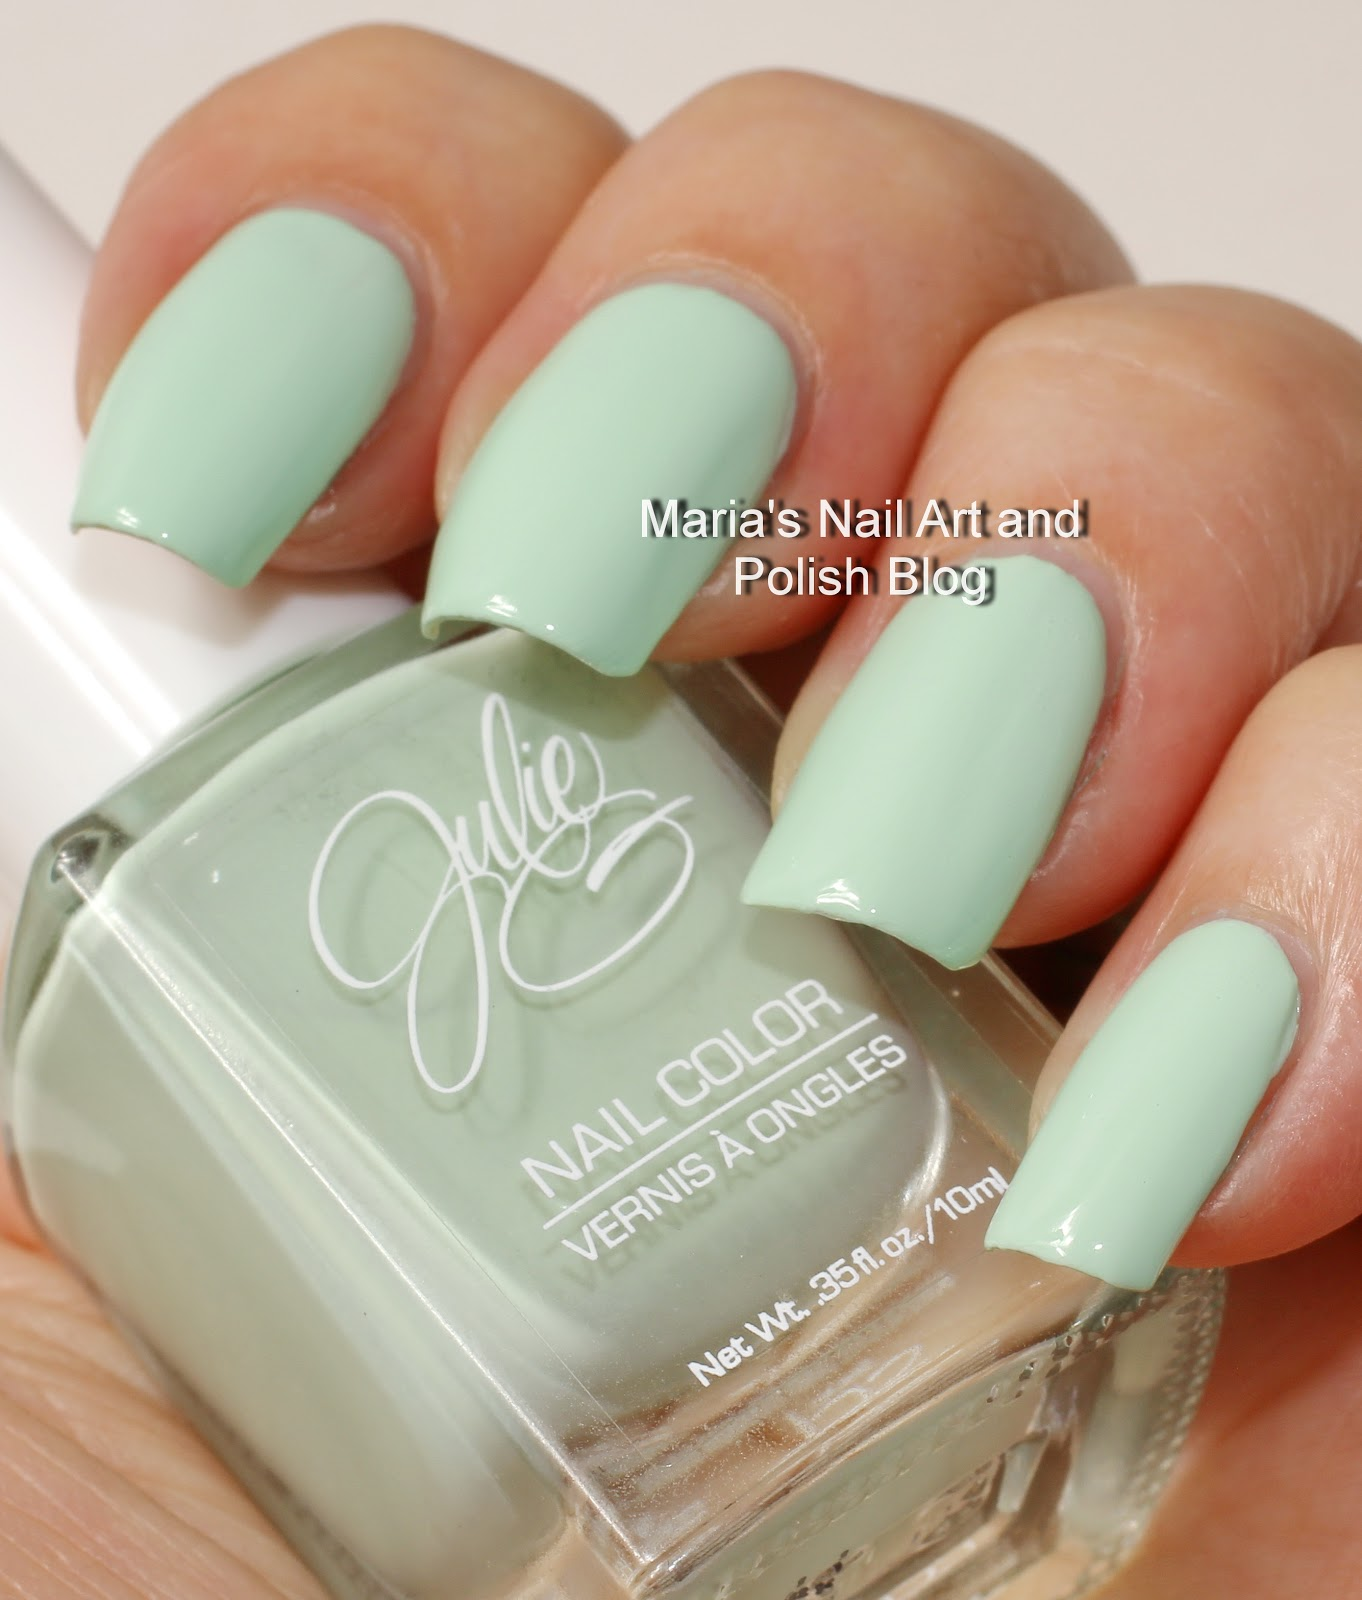 Marias Nail Art And Polish Blog Julie G Swatches Cabana Boy Fairytale And Gelato In Venice